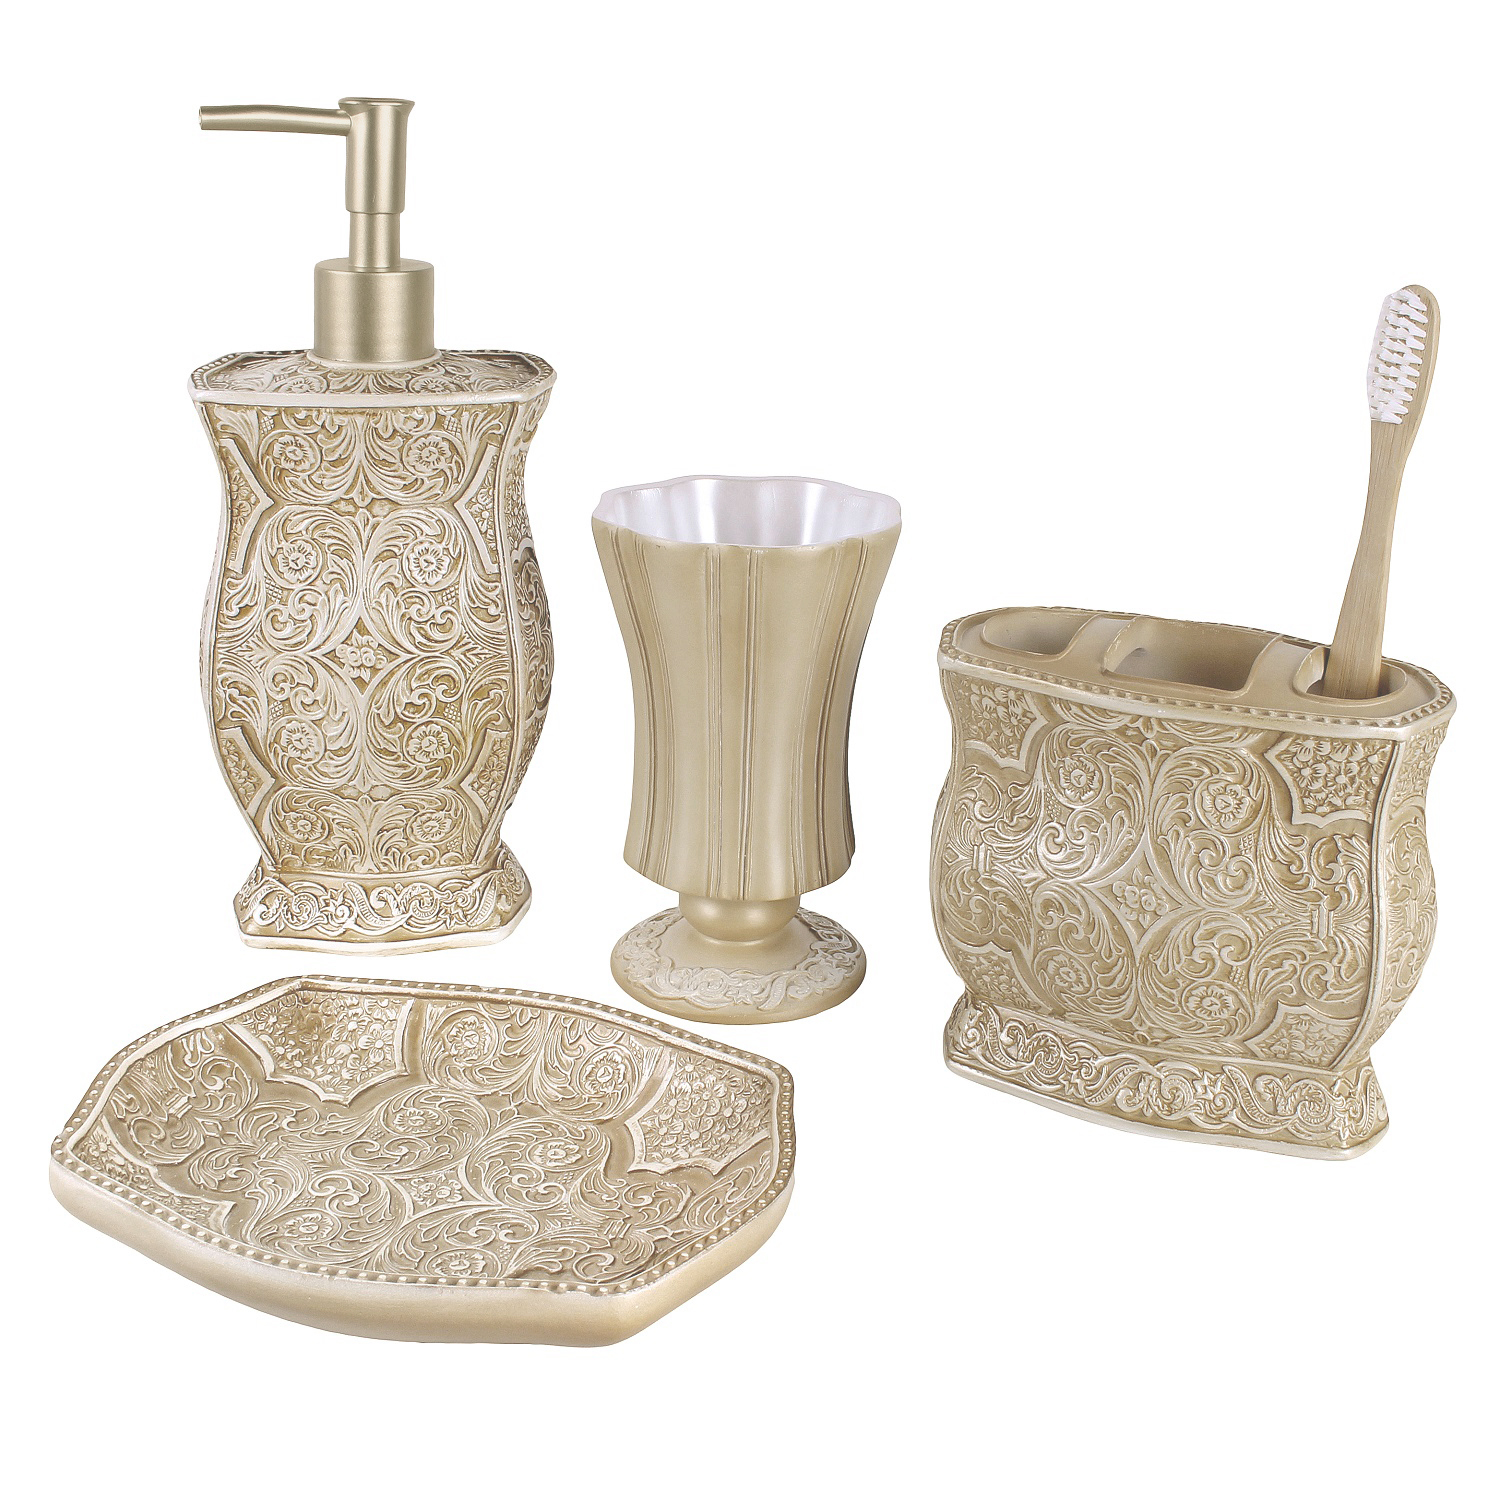 Bathroom Dispenser Set Victoria Bath Ensemble 4 Piece Bathroom Accessories Set Victoria Collection Bath Gift Set Features Soap Dispenser Toothbrush Holder Tumbler Soap